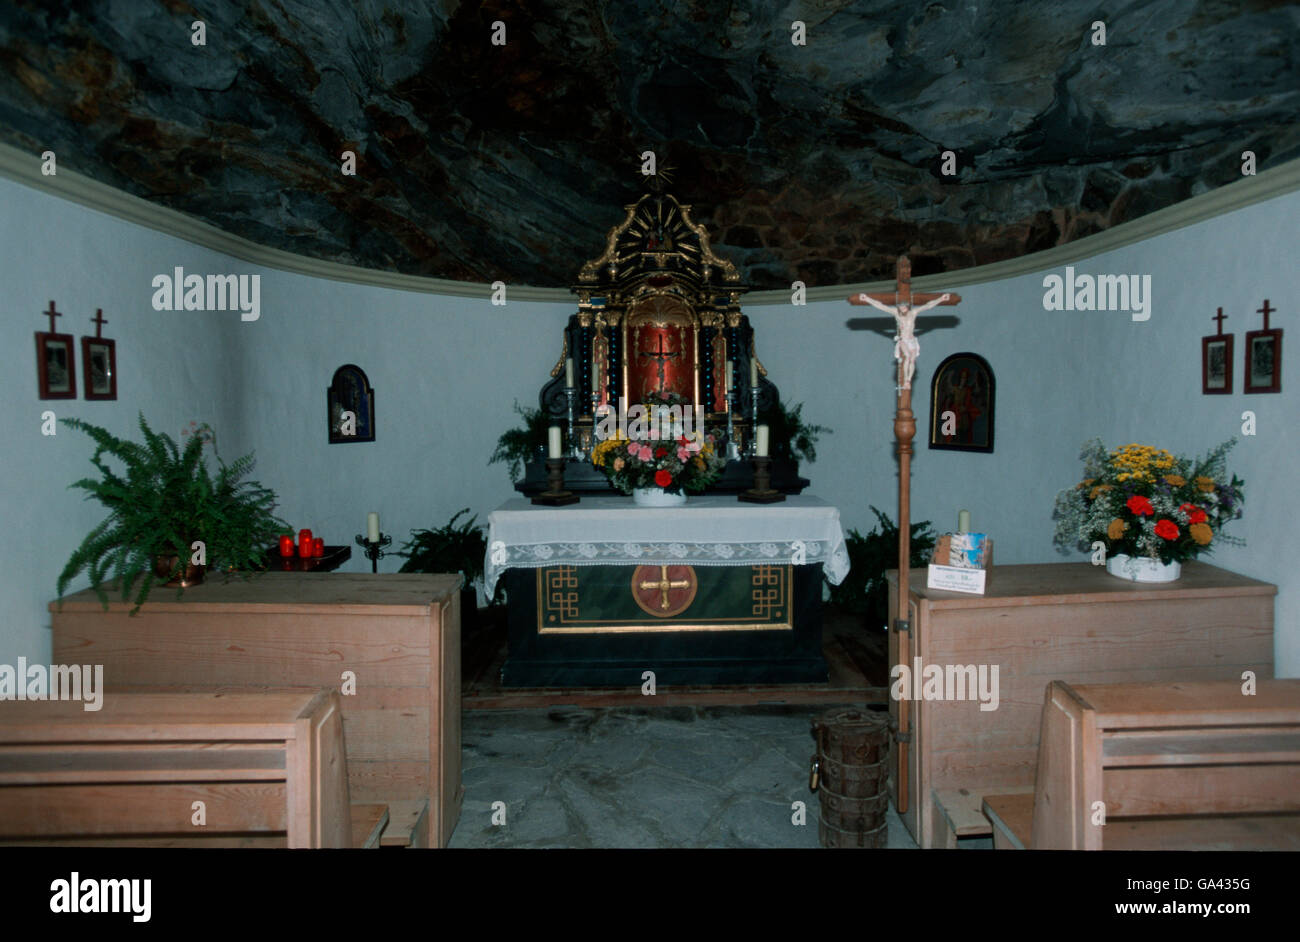 Inside of the Rock Chapell, north of Matrei, Austria / alps - Stock Image